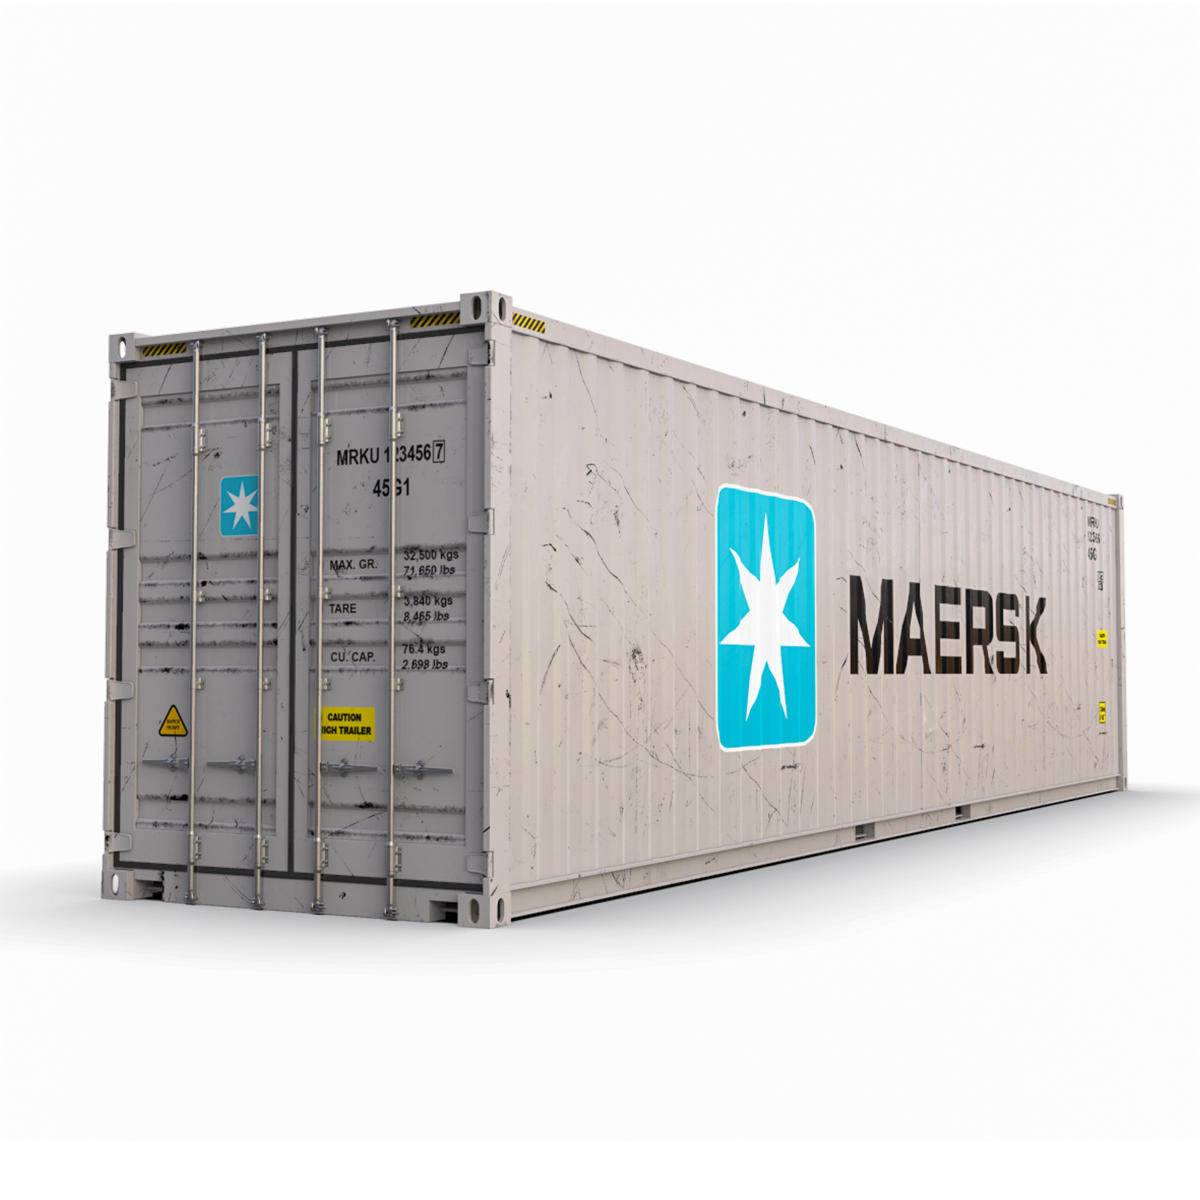 40 Shipping Container >> 40 Feet High Cube Maersk Shipping Container Model